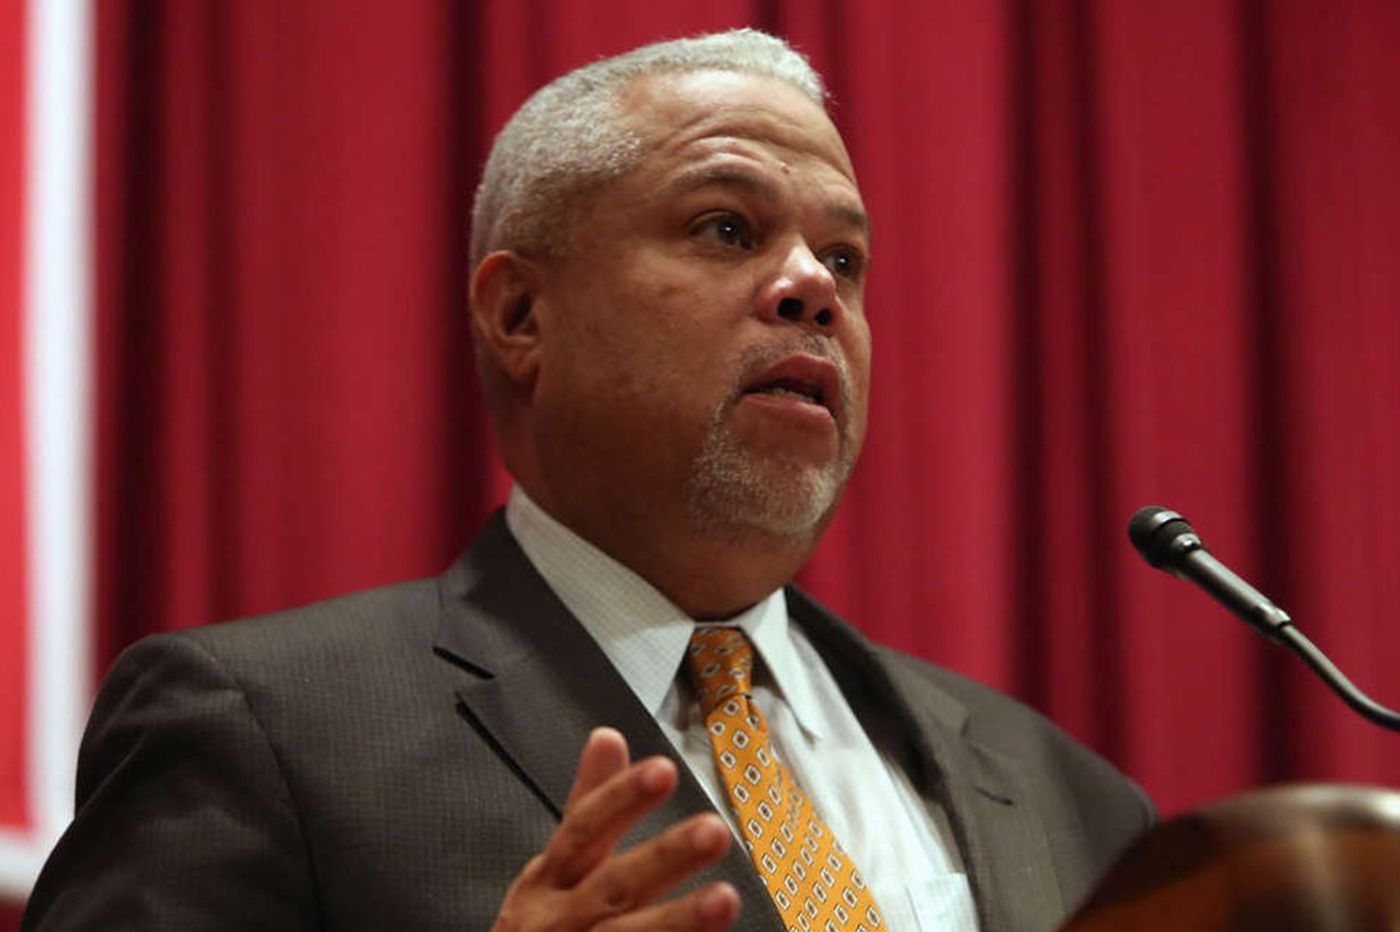 `Outraged' by officer promotions, State Sen. Anthony Hardy Williams urges Philly's top cop to rescind them